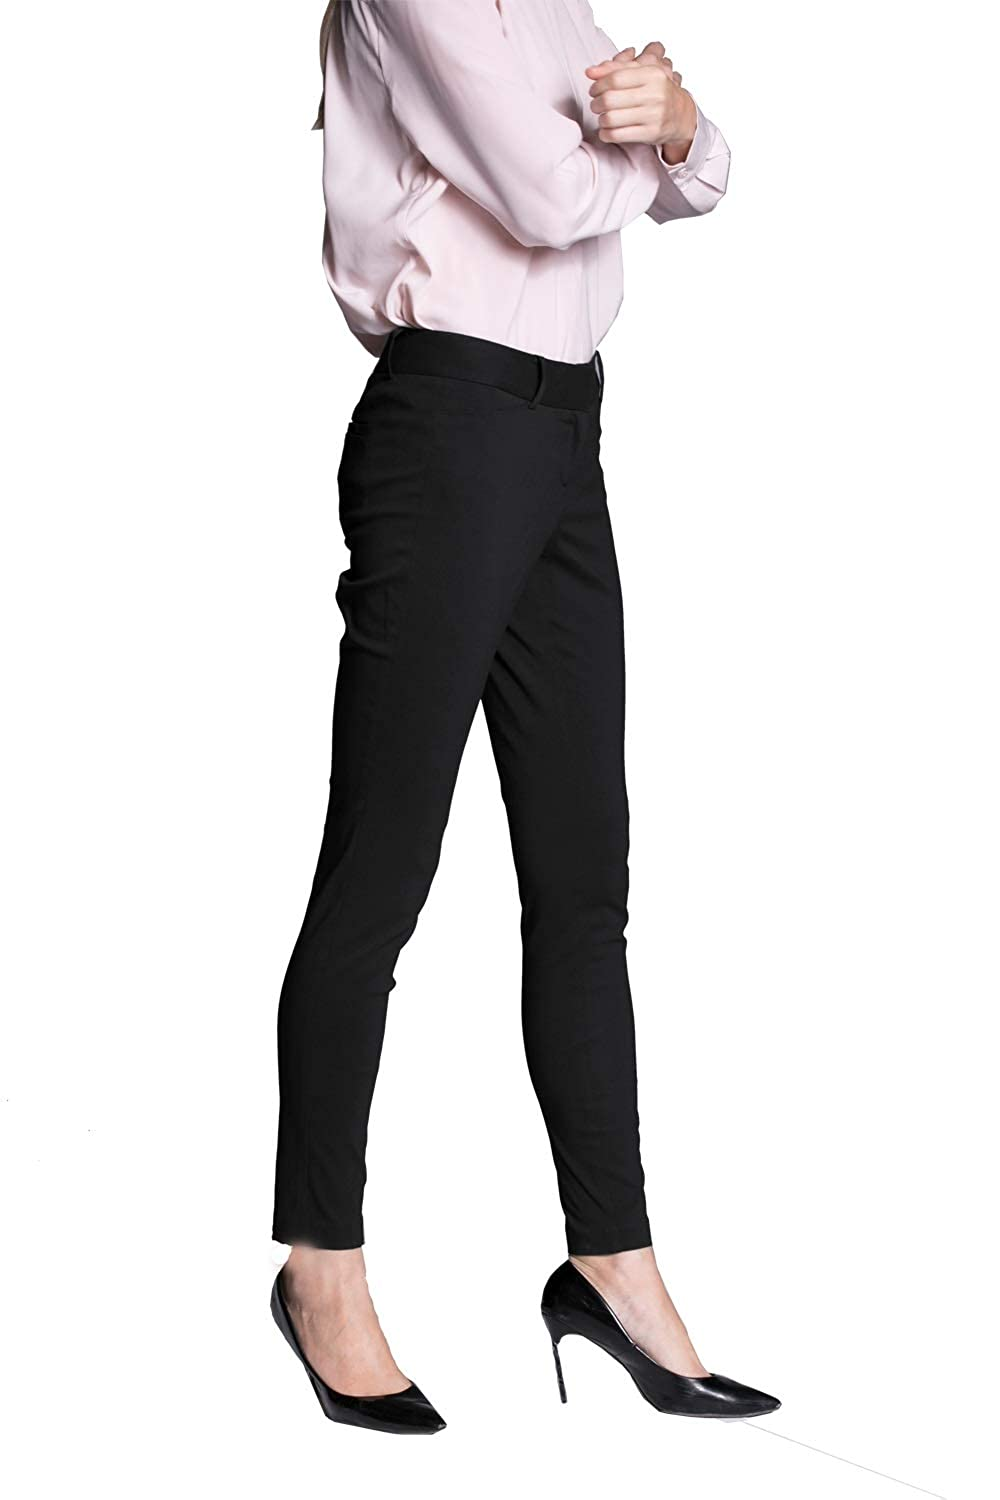 be86ed47f8 YTUIEKY Womens Dress Pants, Casual Slim Fit Super Stretch Comfy Skinny  Career Straight Fit Trouser Leg Pants at Amazon Women's Clothing store: